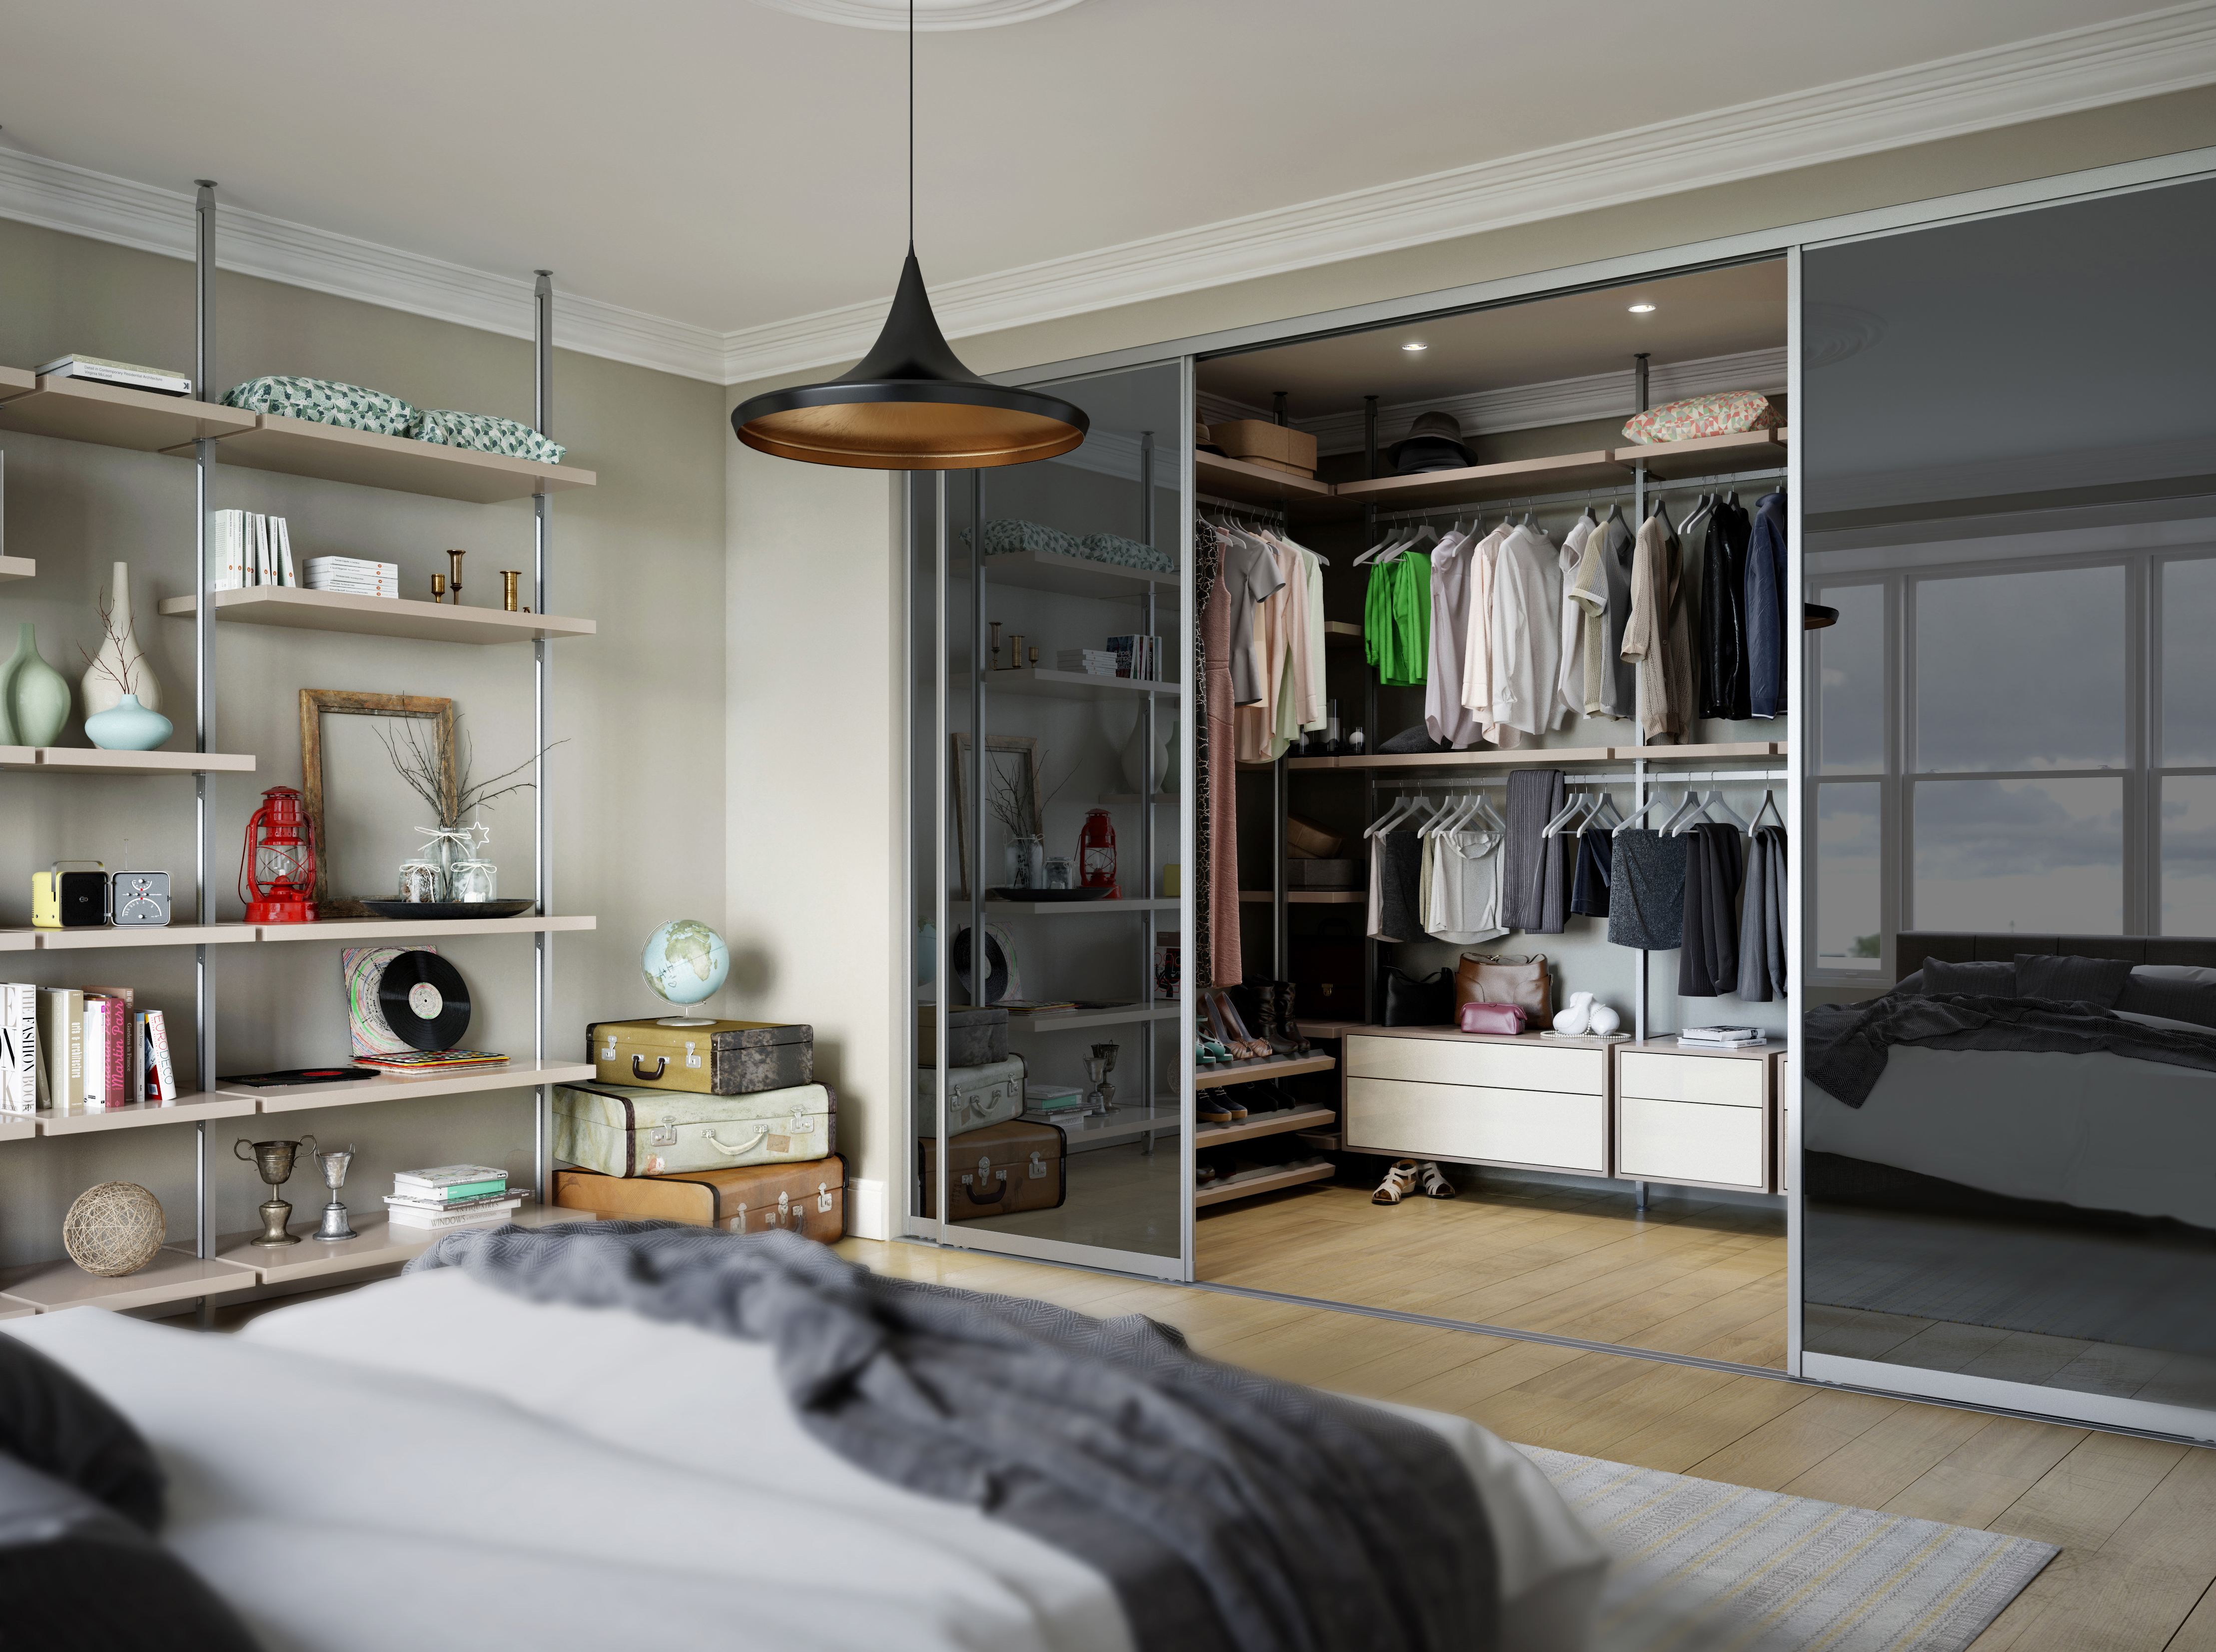 walk in wardrobe designs how to design your own spaceslide rh spaceslide co uk walk in wardrobe design nz walk in wardrobe design india